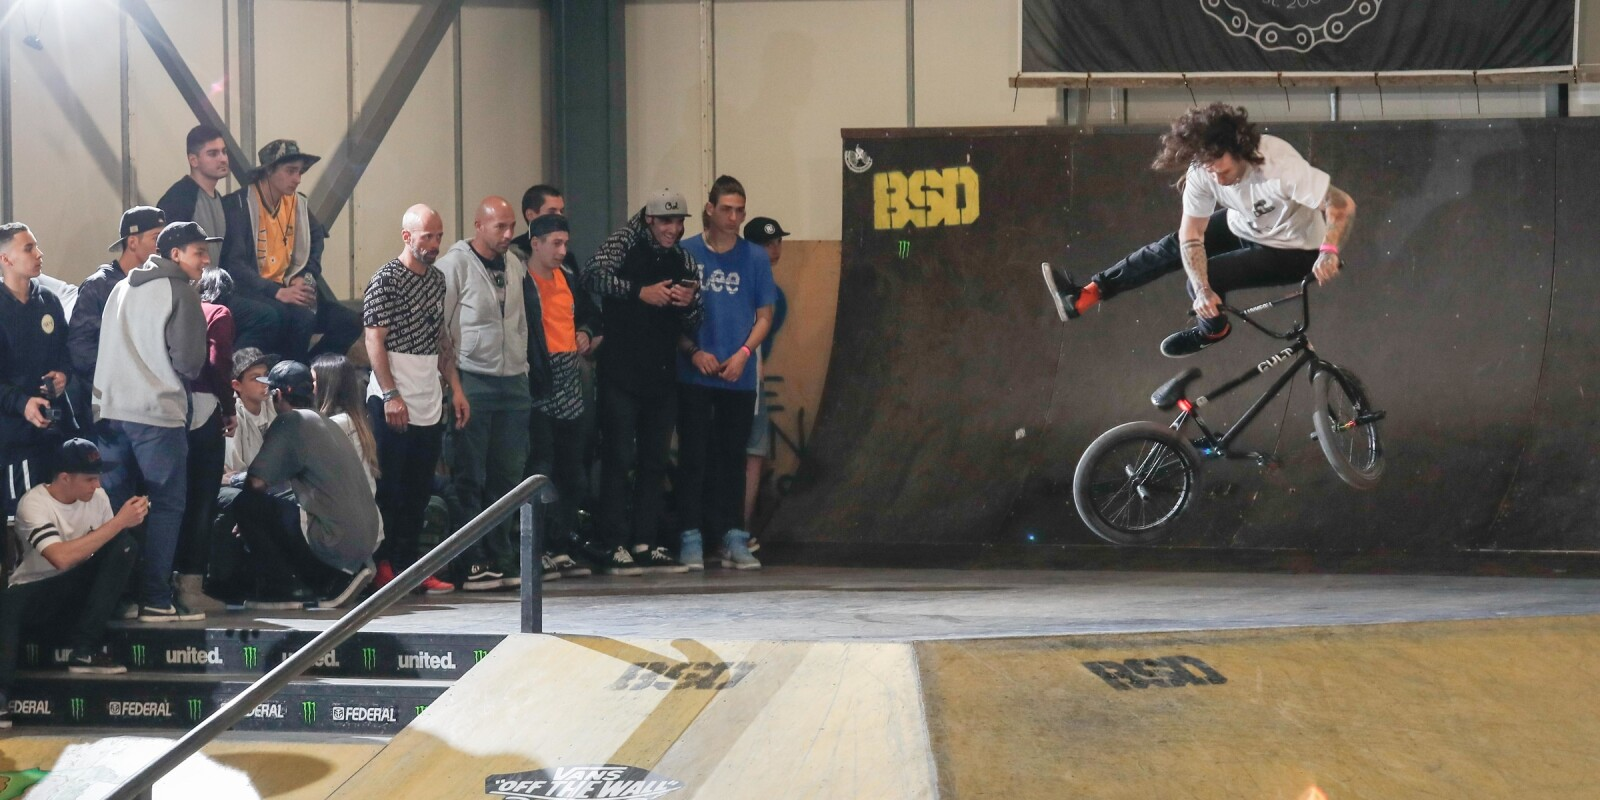 Photos from NorthJam BMX Contest in Thessaloniki Greece